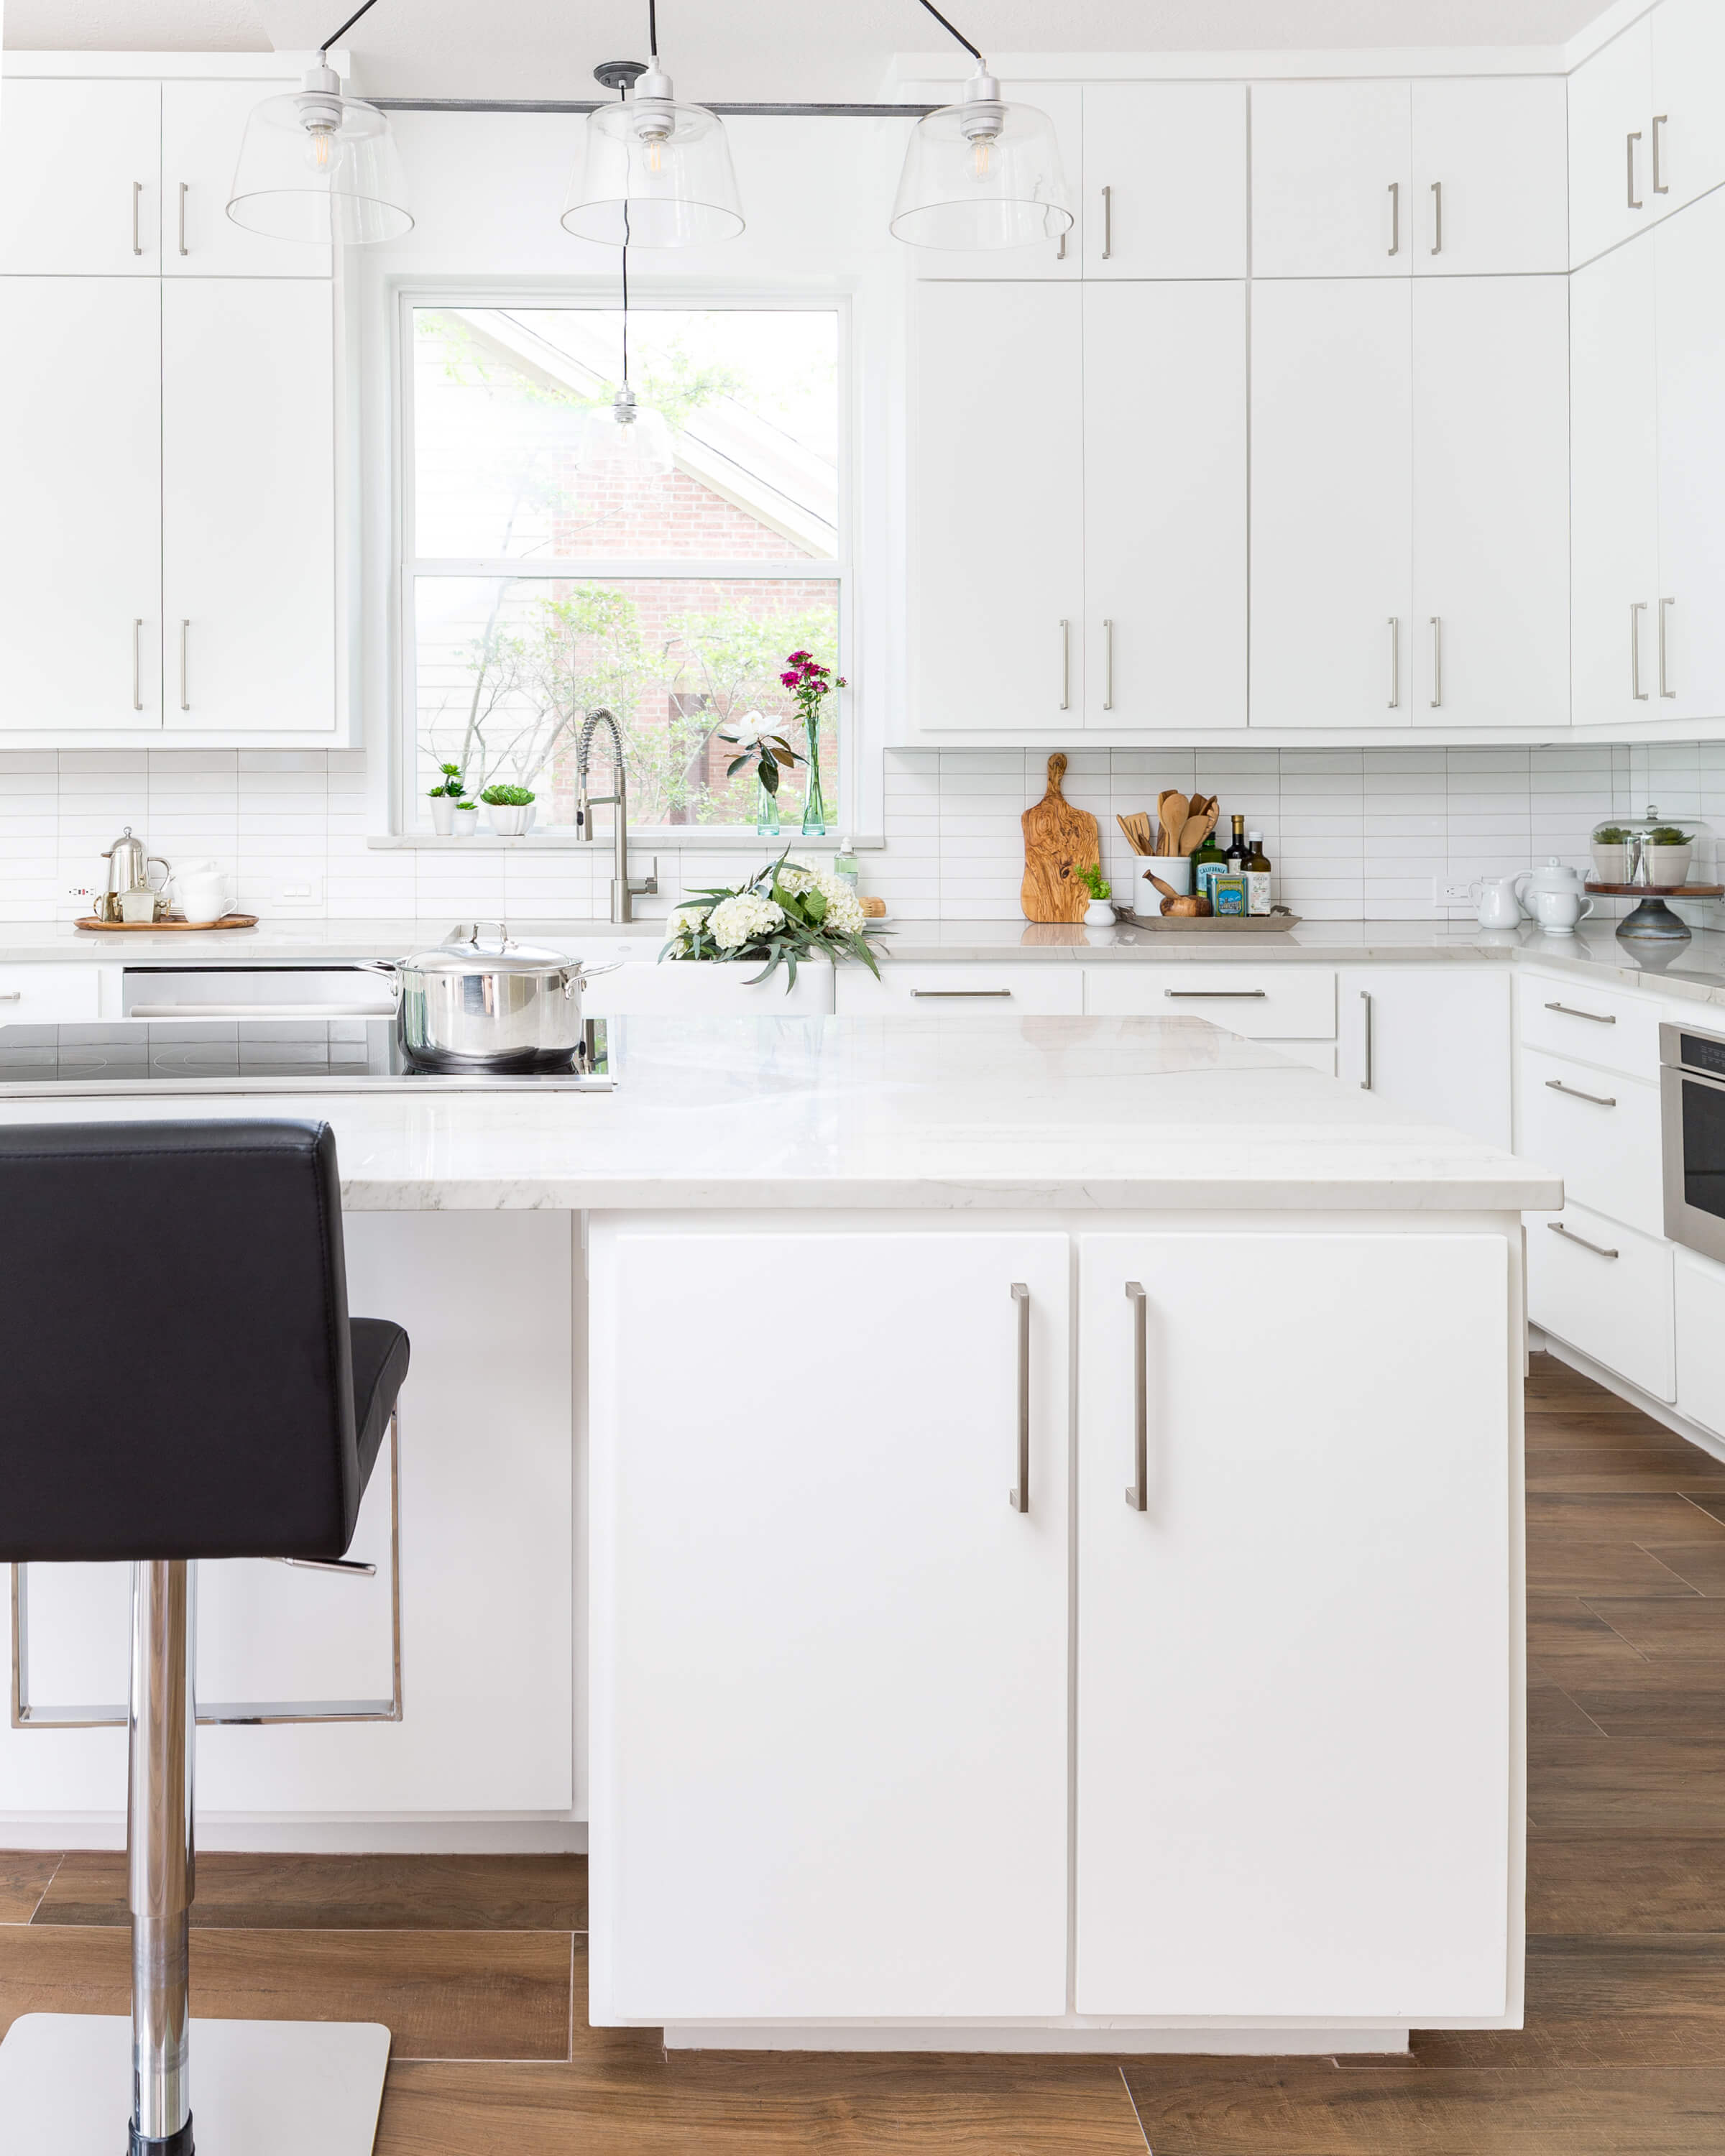 AFTER - The homeowners were after a white kitchen and that is exactly what they got! Simple details, white cabinetry and a linear stacked tile make for a simple look. Carla Aston, Designer | Colleen Scott, Photographer #whitekitchen #kitchenideas